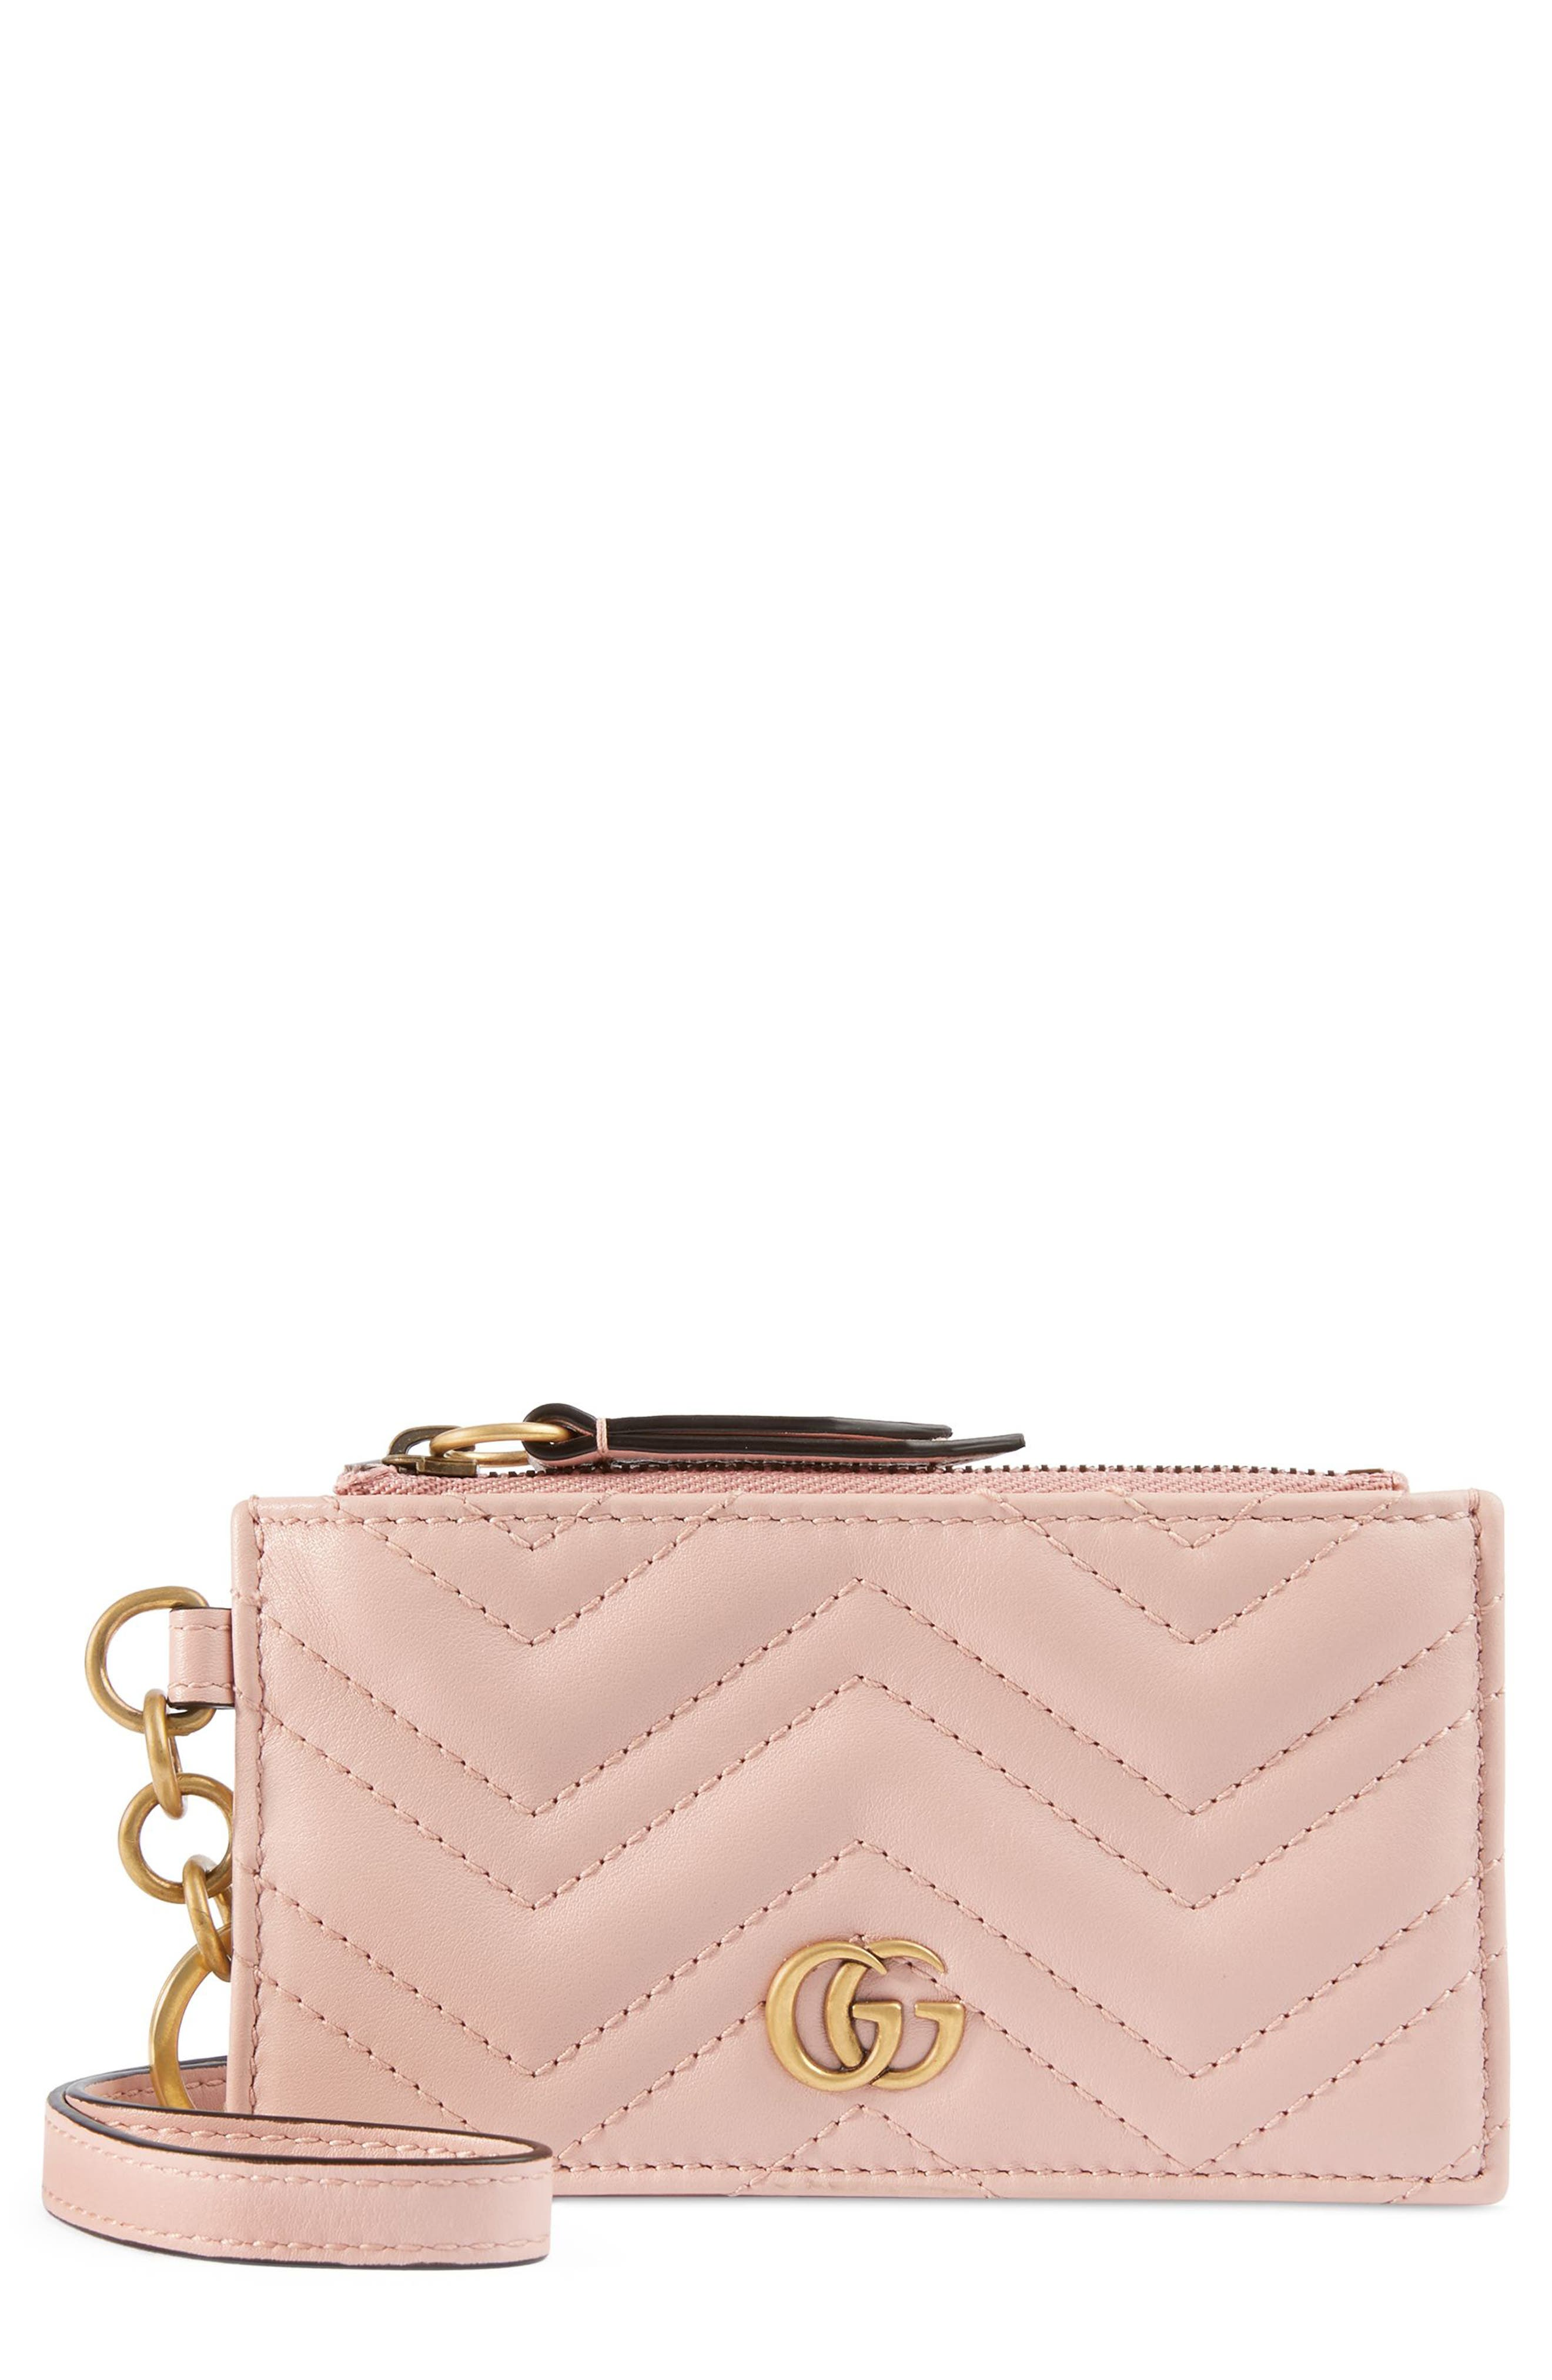 GUCCI, Marmont 2.0 Leather Card Case, Main thumbnail 1, color, PERFECT PINK